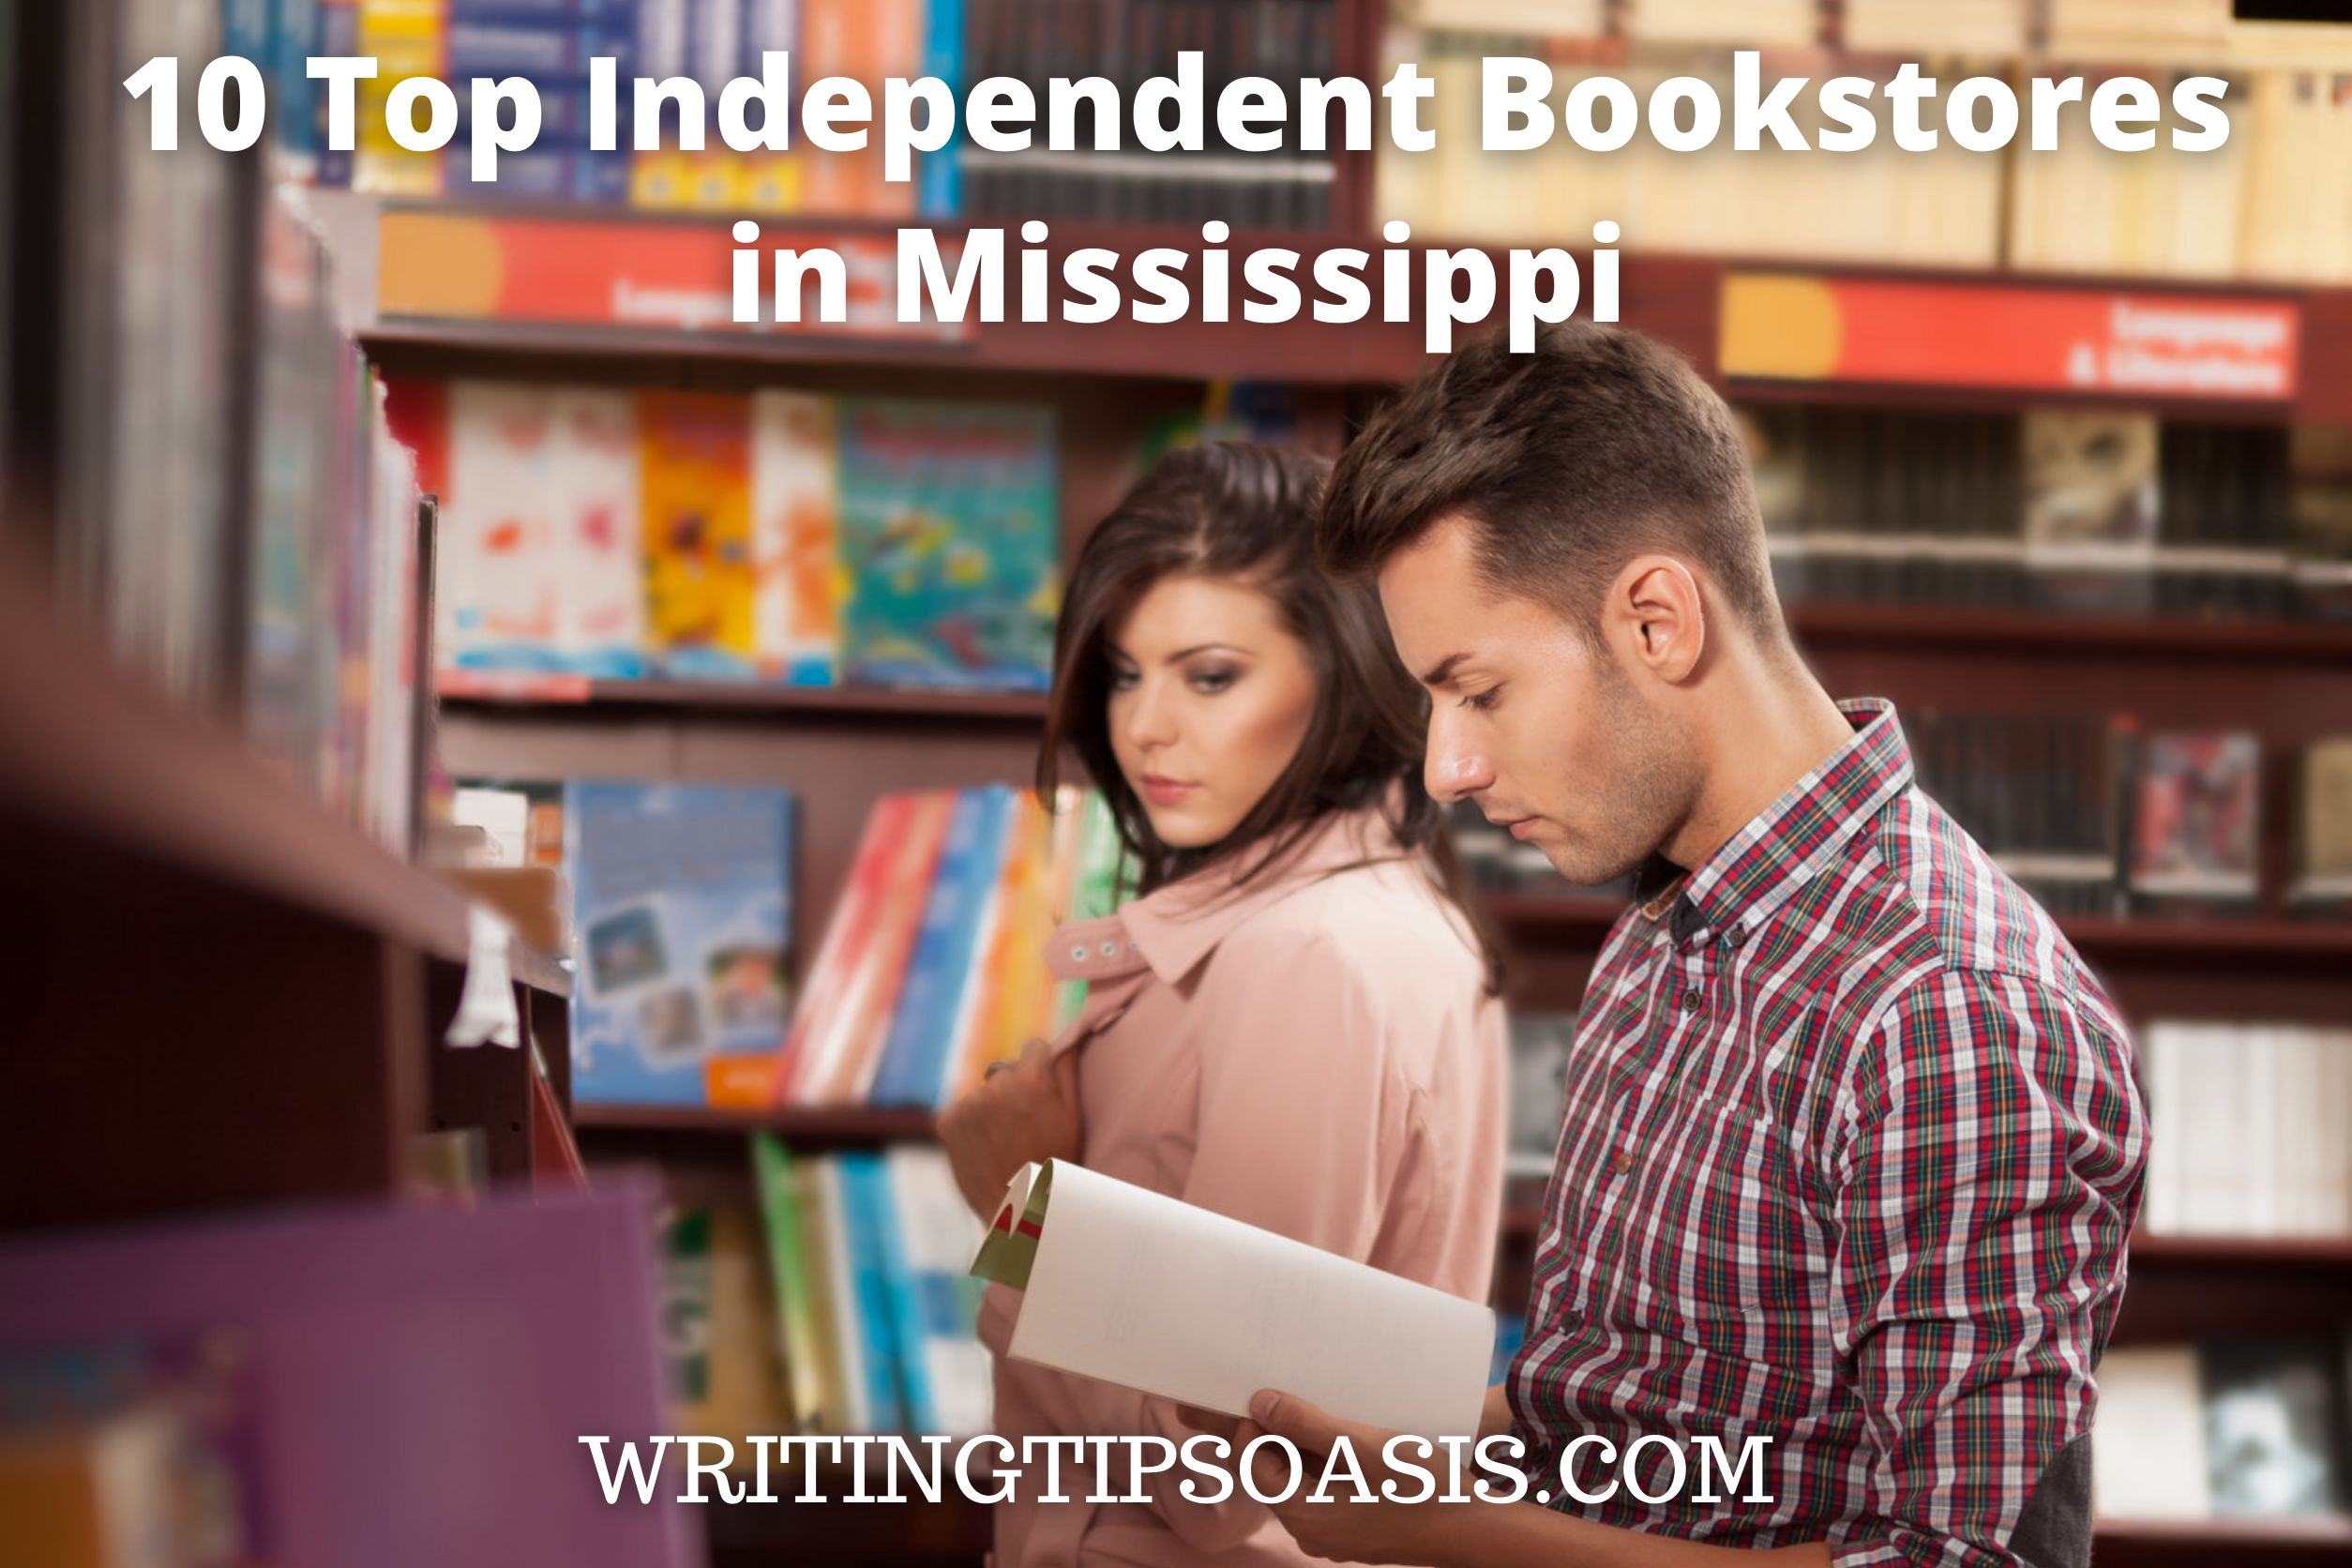 independent bookstores in Mississippi